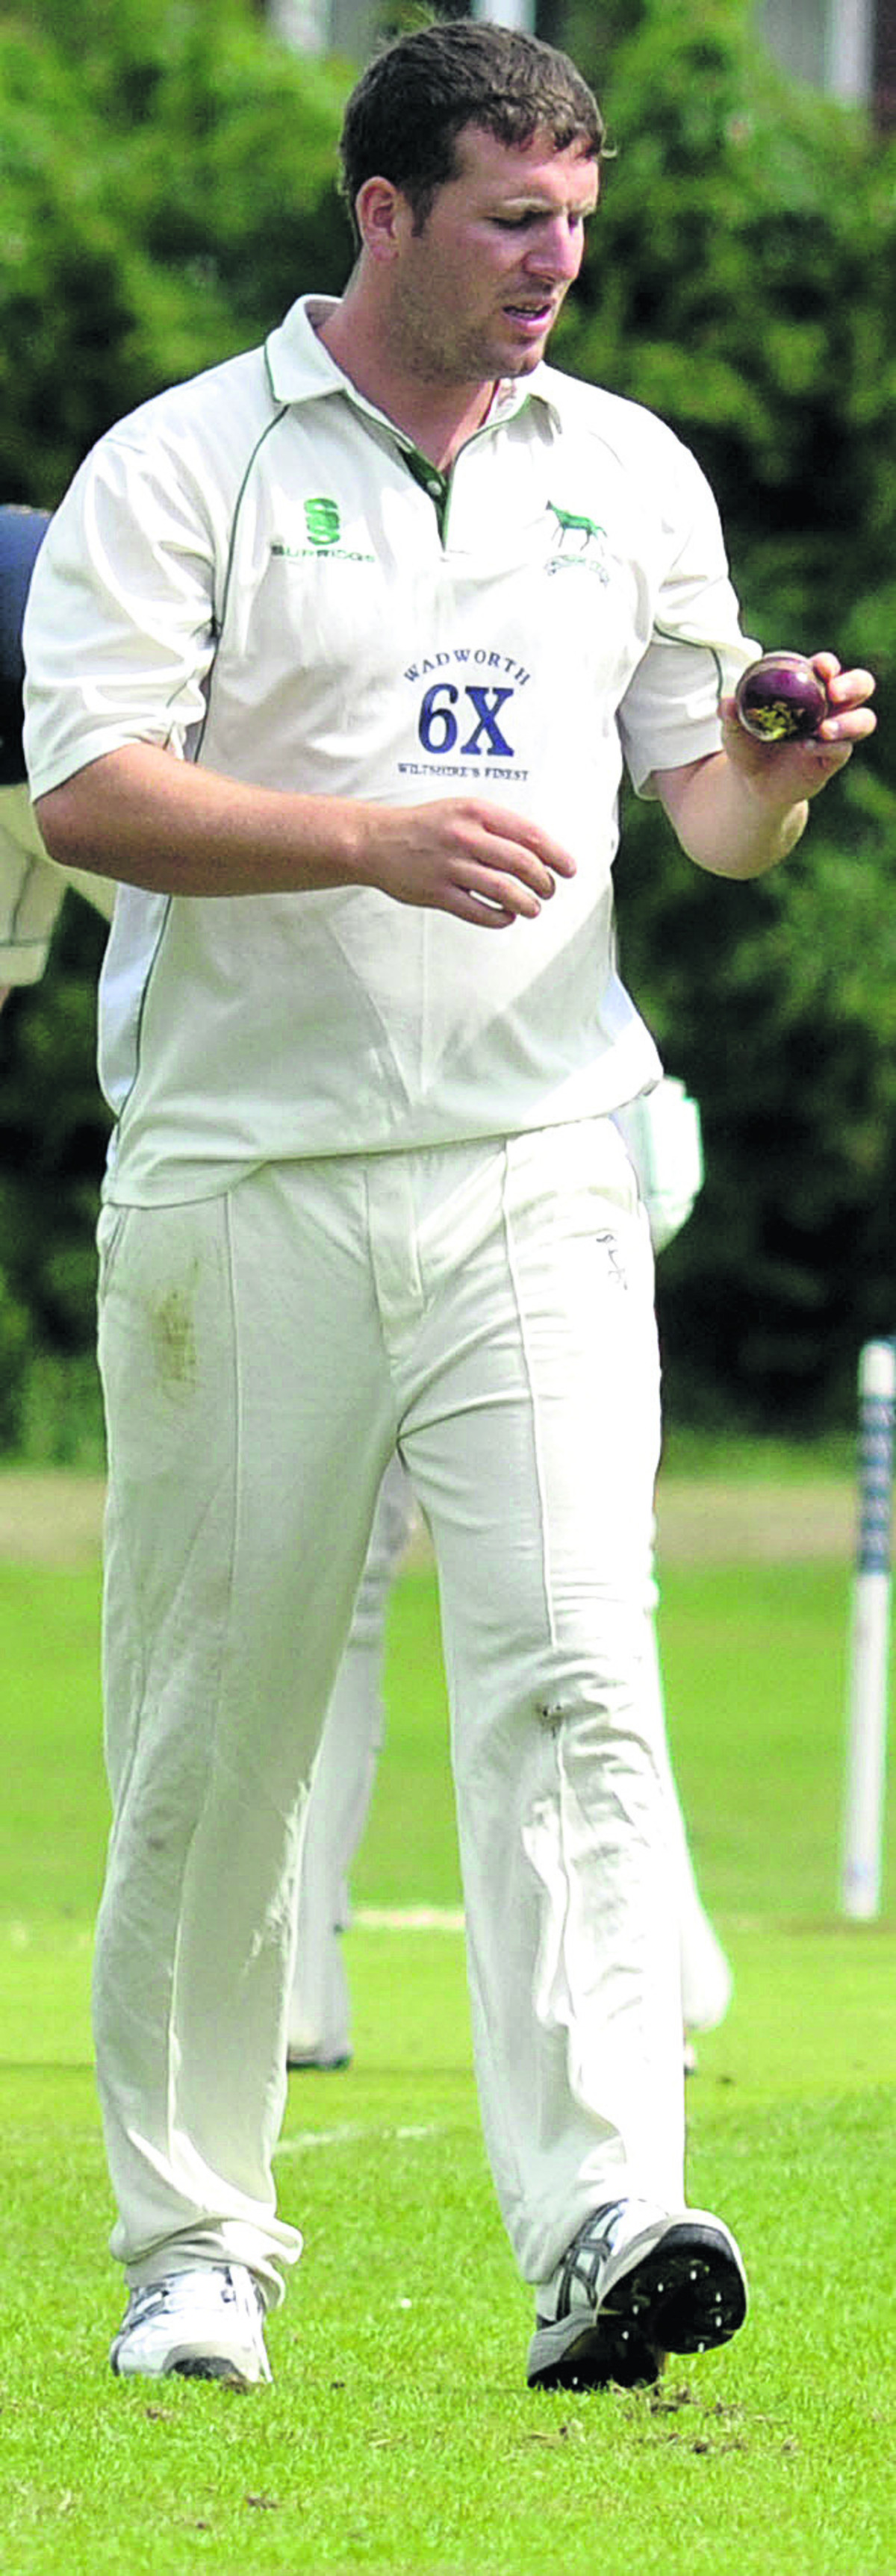 Wiltshire's Jake Roberts took four Dorset wickets